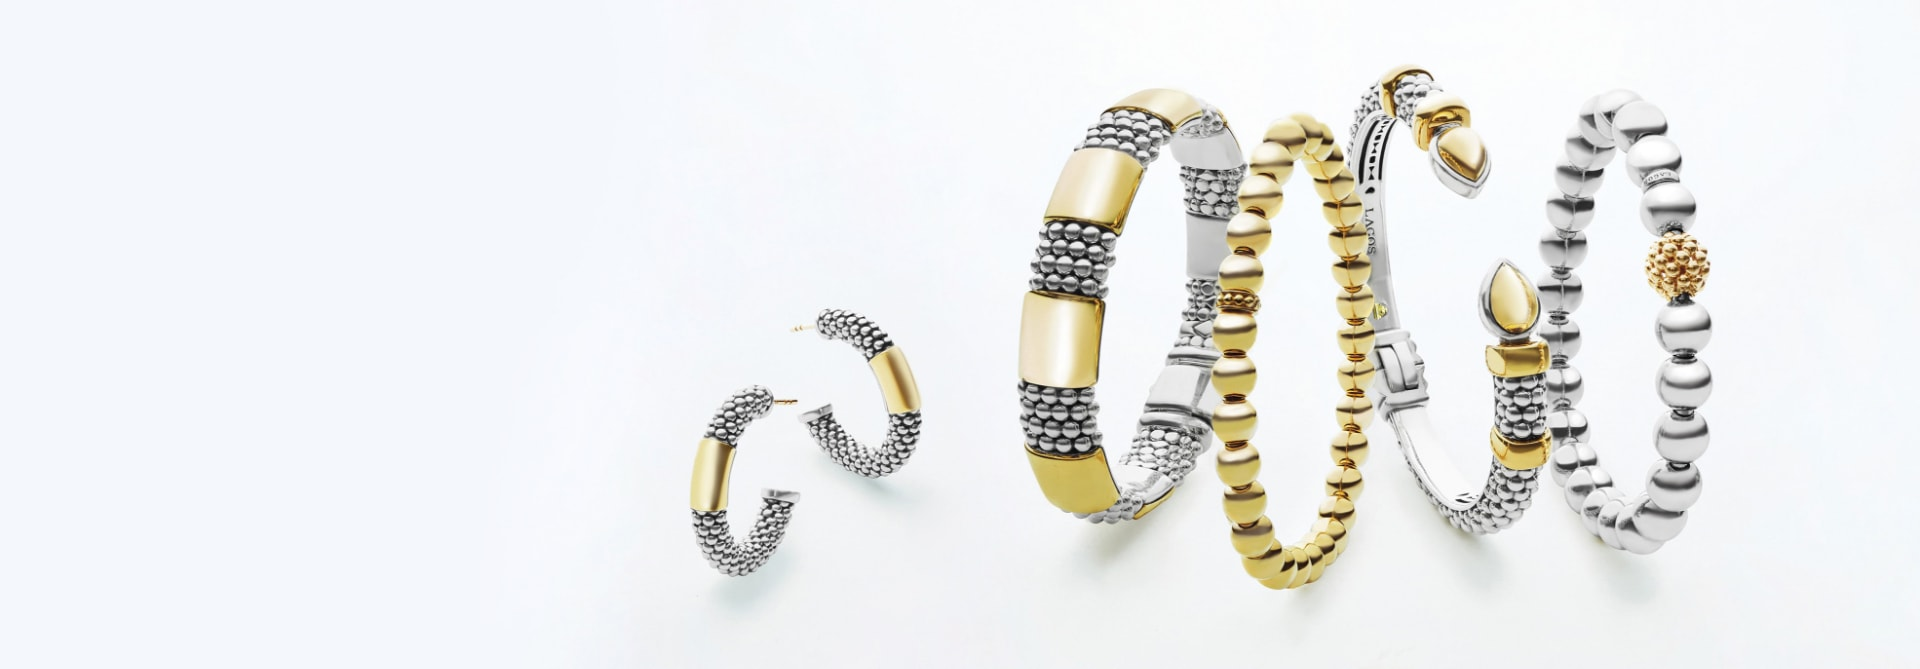 bracelets with 18K gold and sterling silver Caviar beaded accents